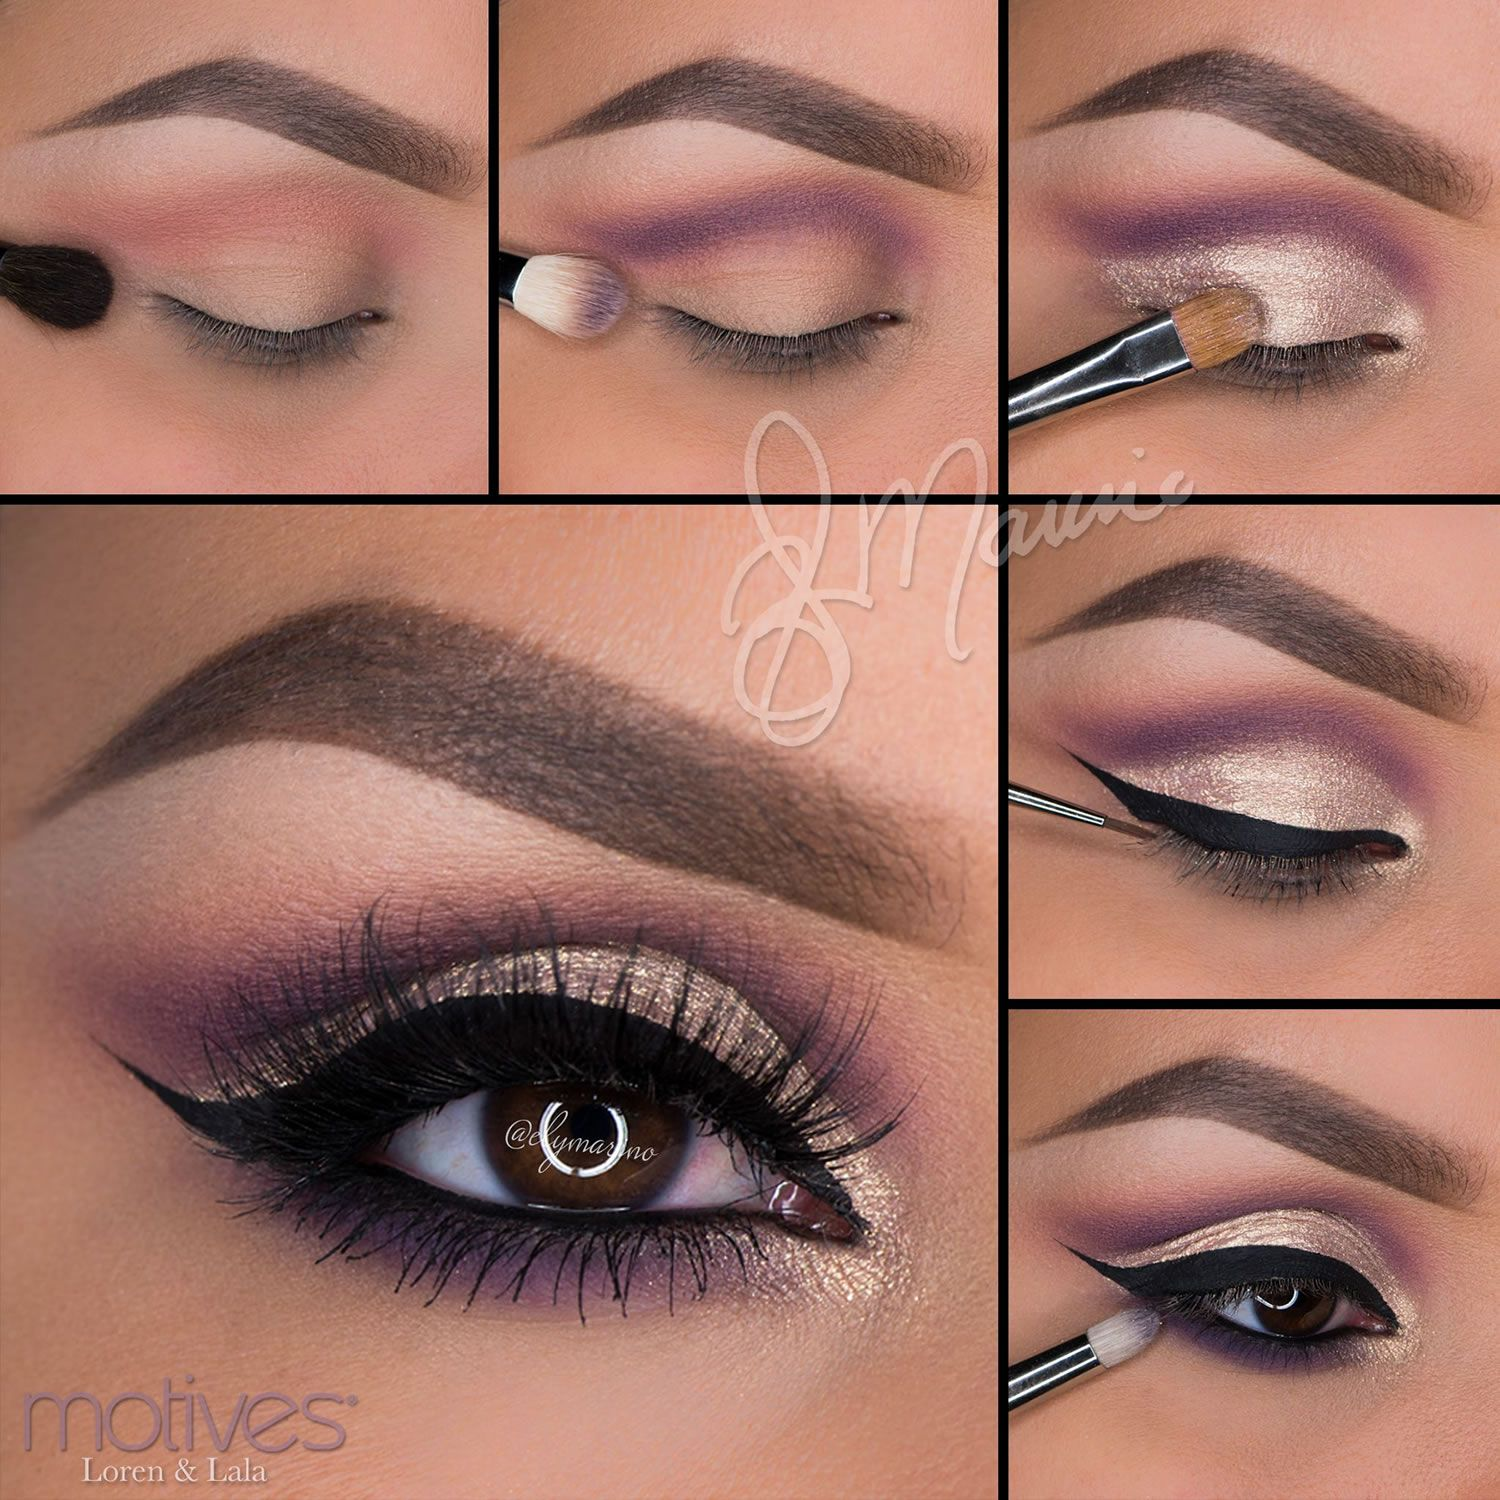 Here is another gorgeous look by professional makeup artist Ely